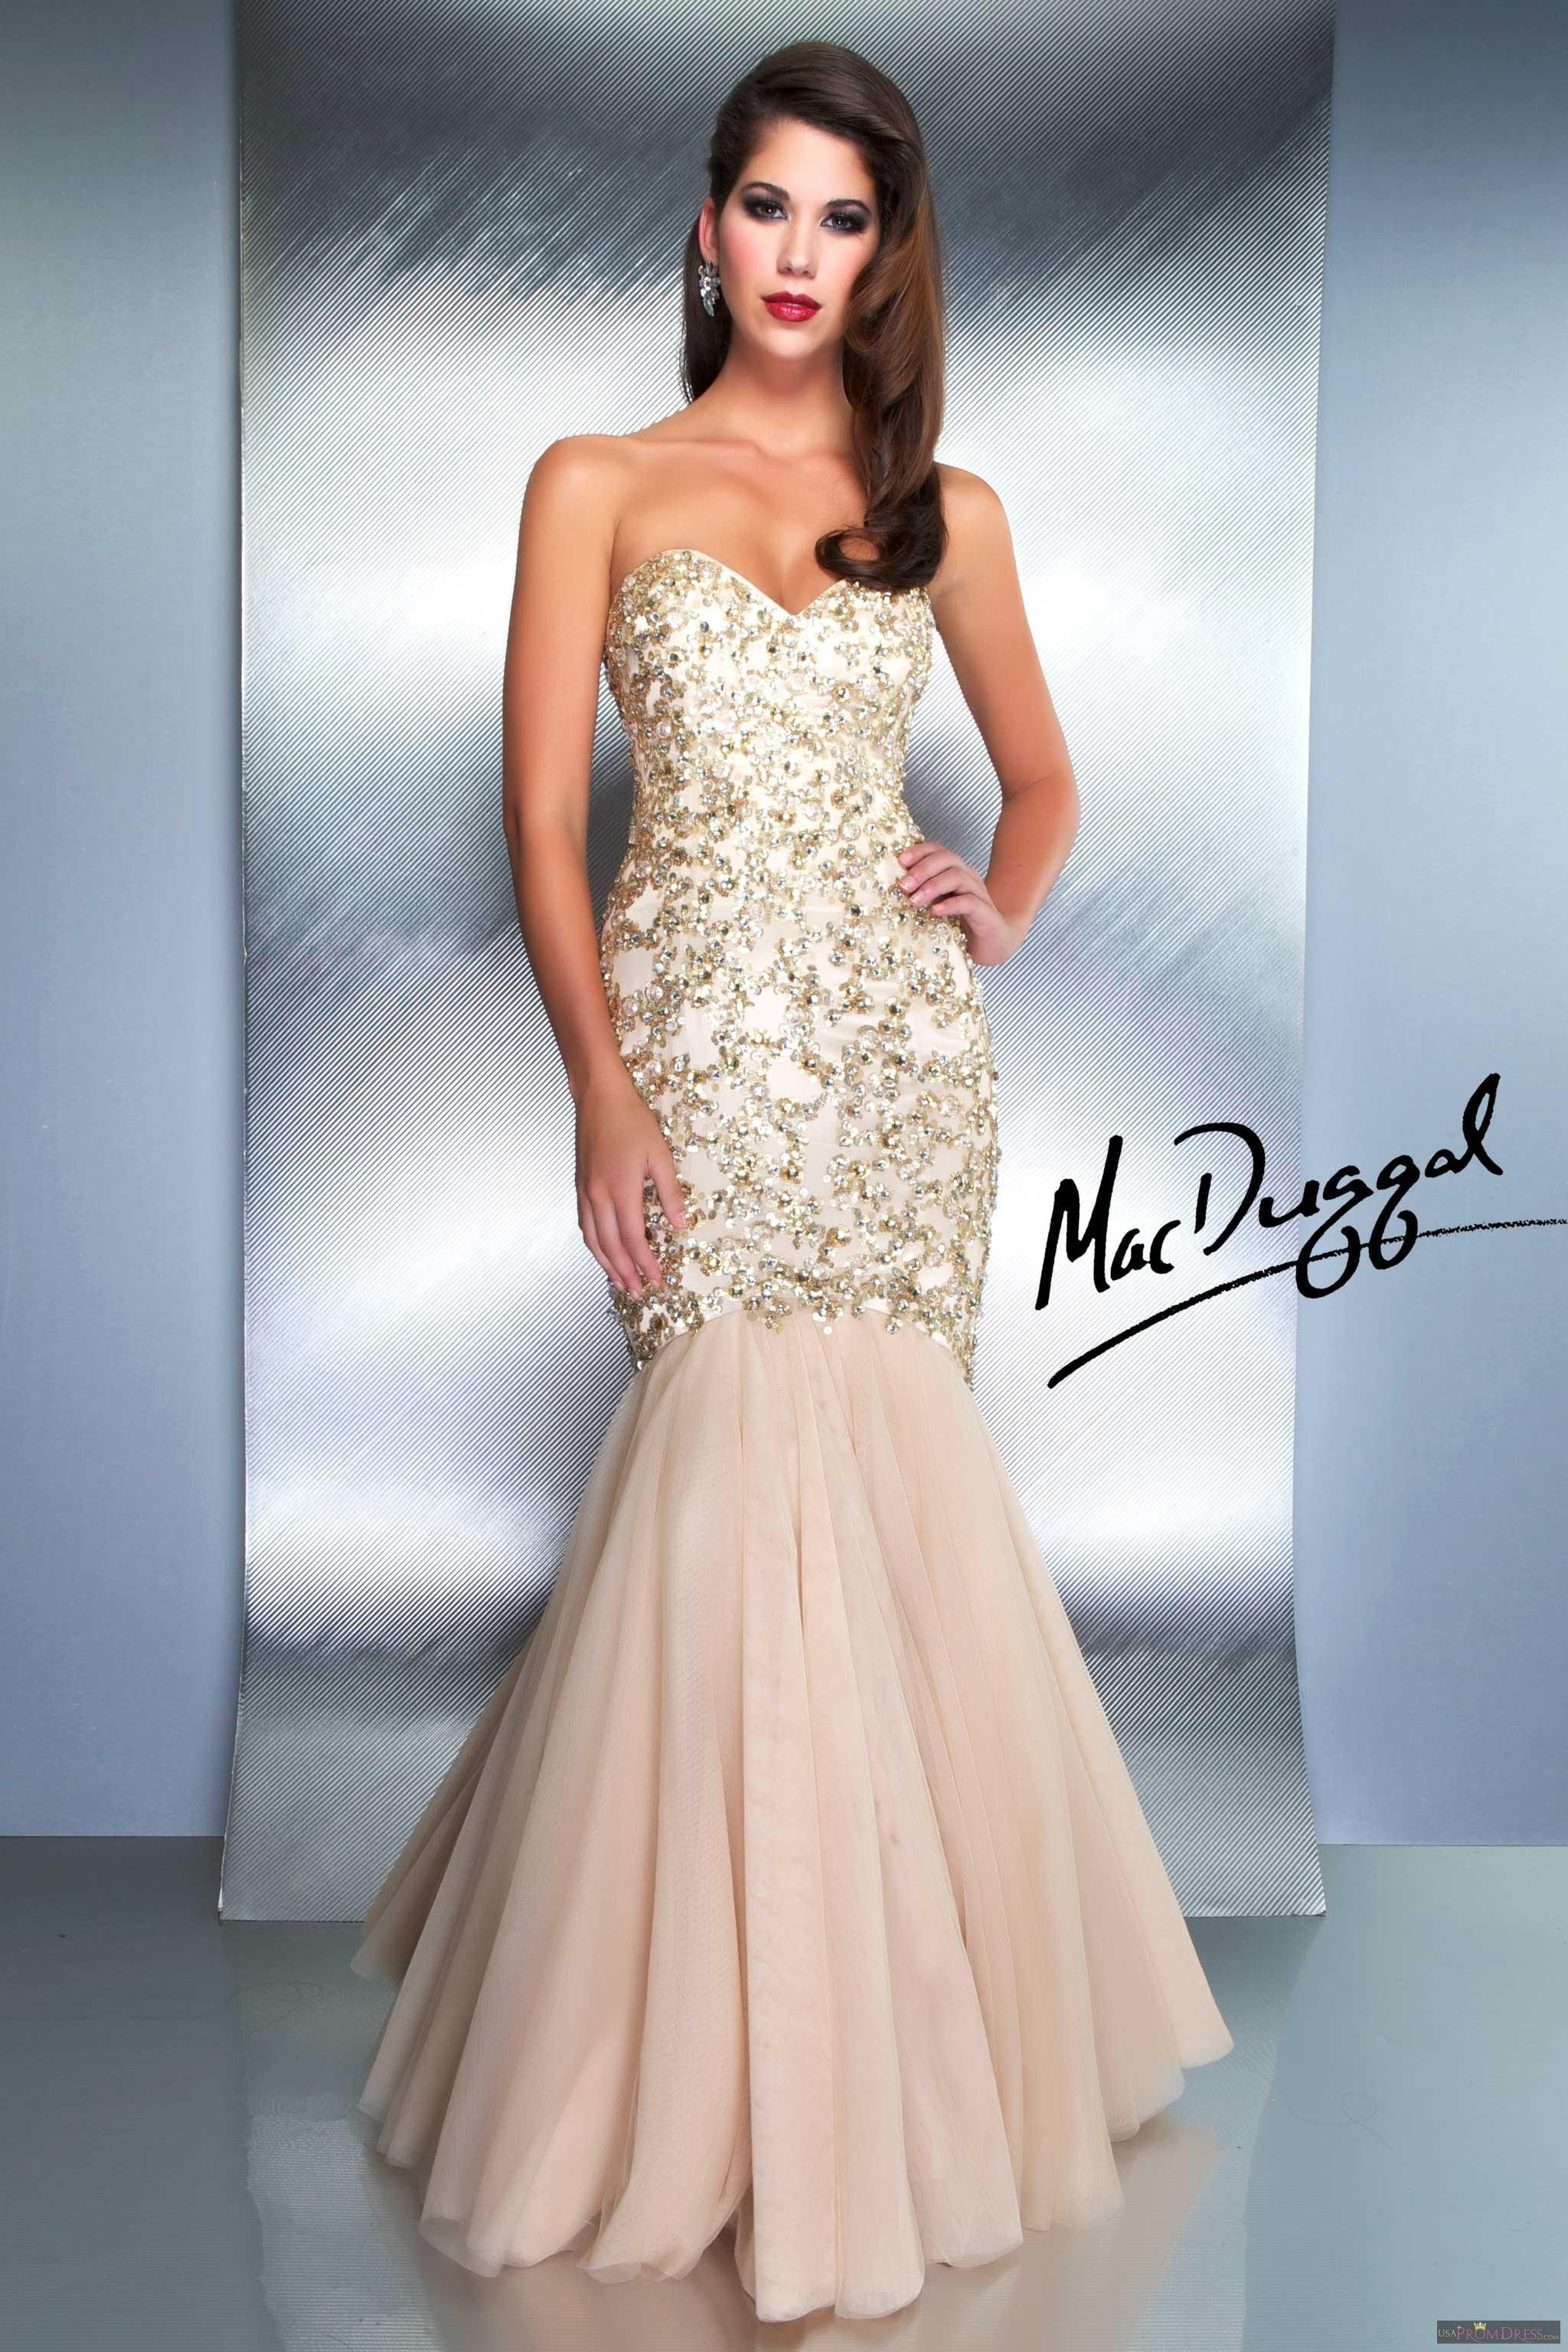 Mac duggal style d looking for a glamorous evening gown with